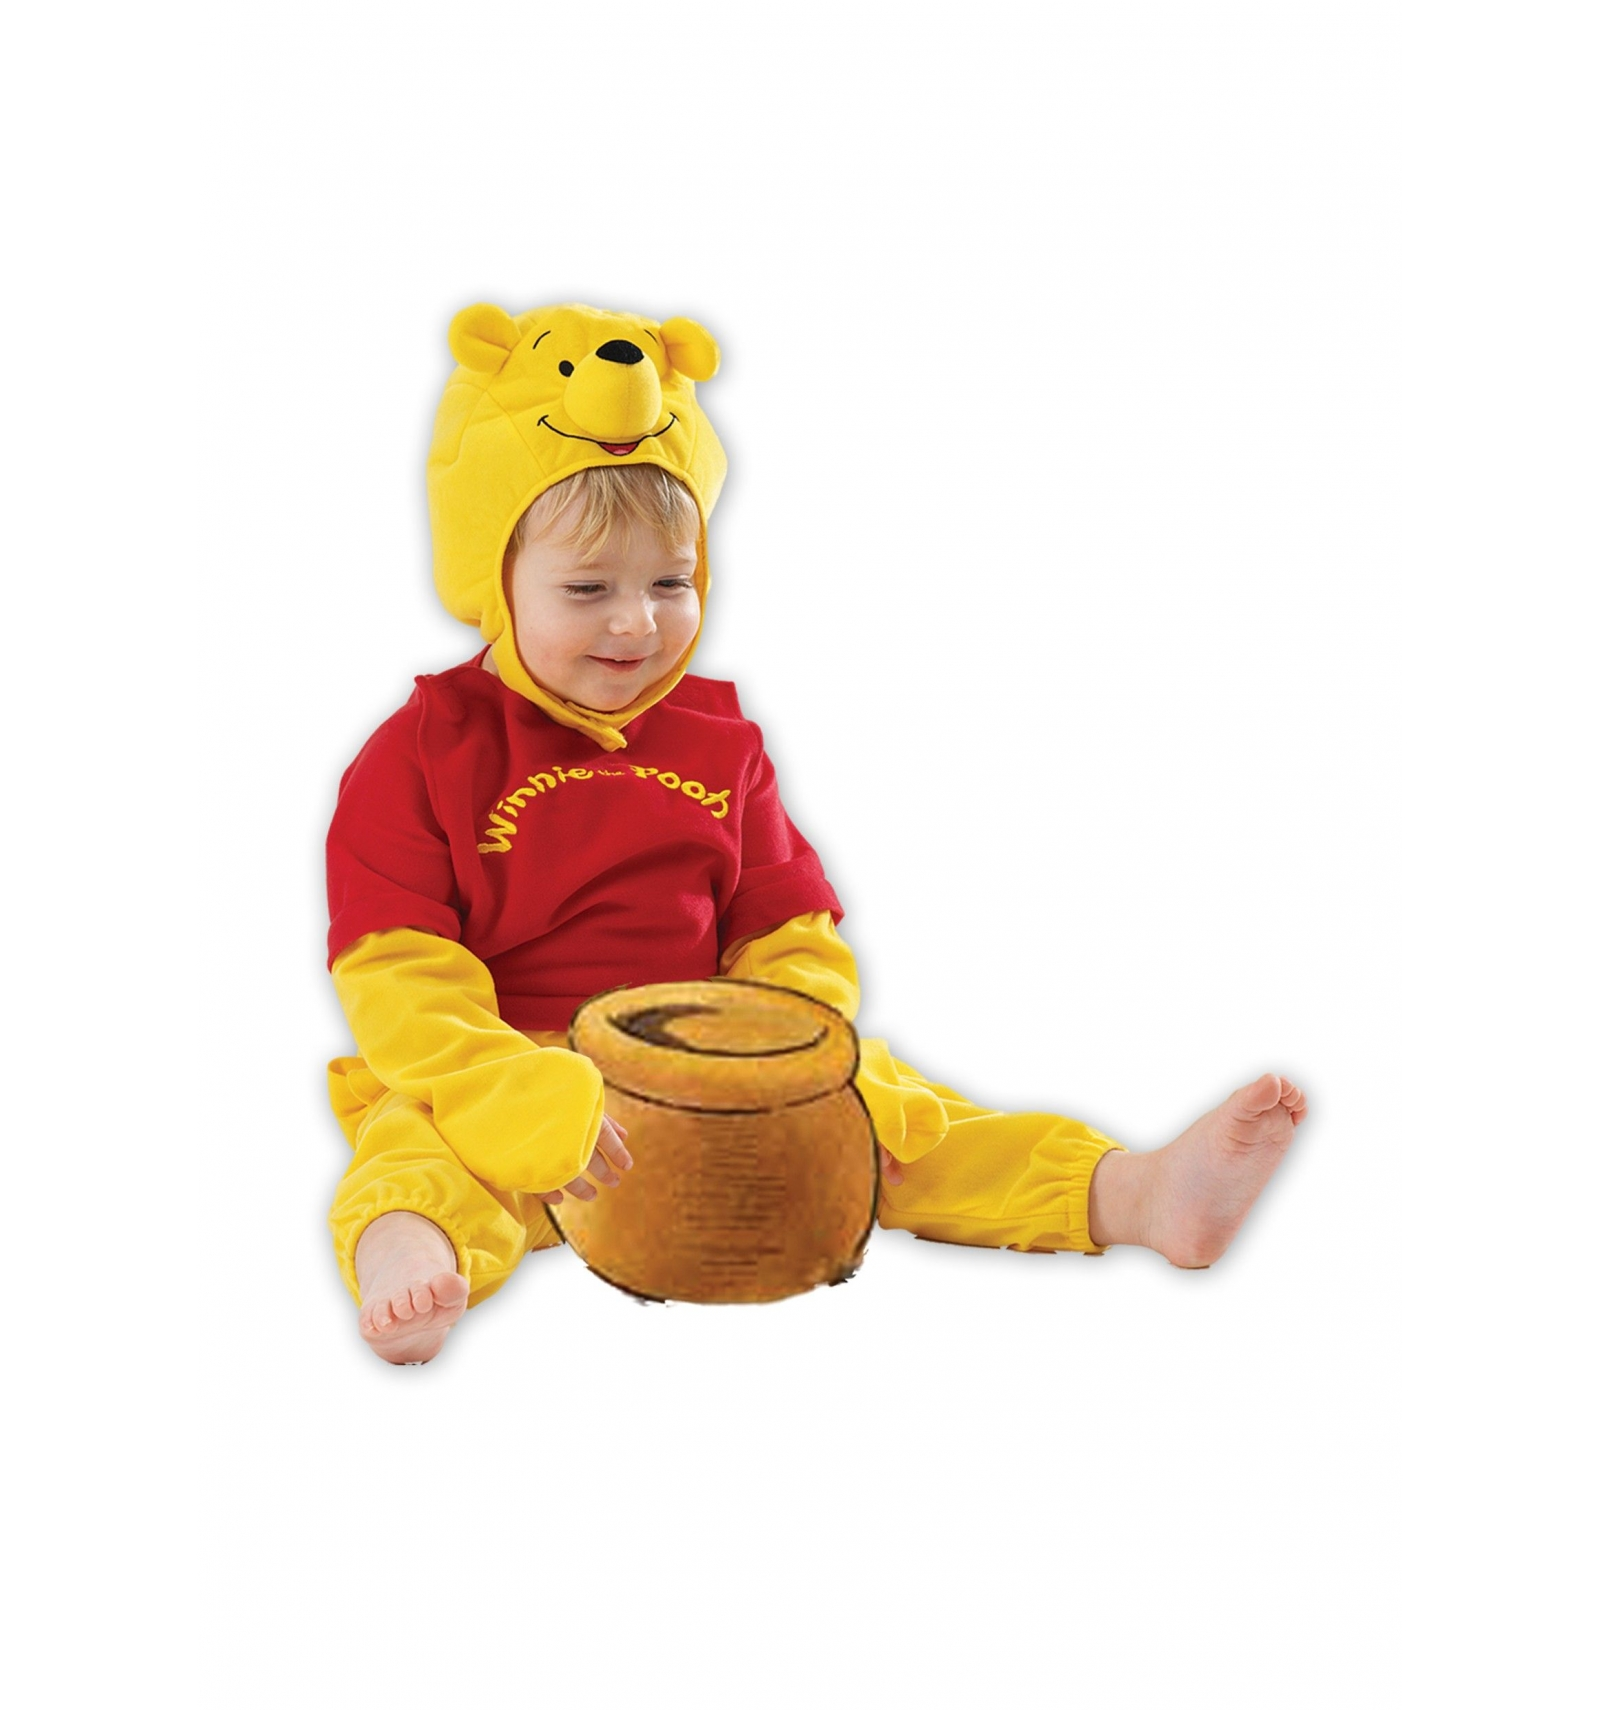 winnie the pooh kinderkost m comarfi ihr online shop kost m. Black Bedroom Furniture Sets. Home Design Ideas